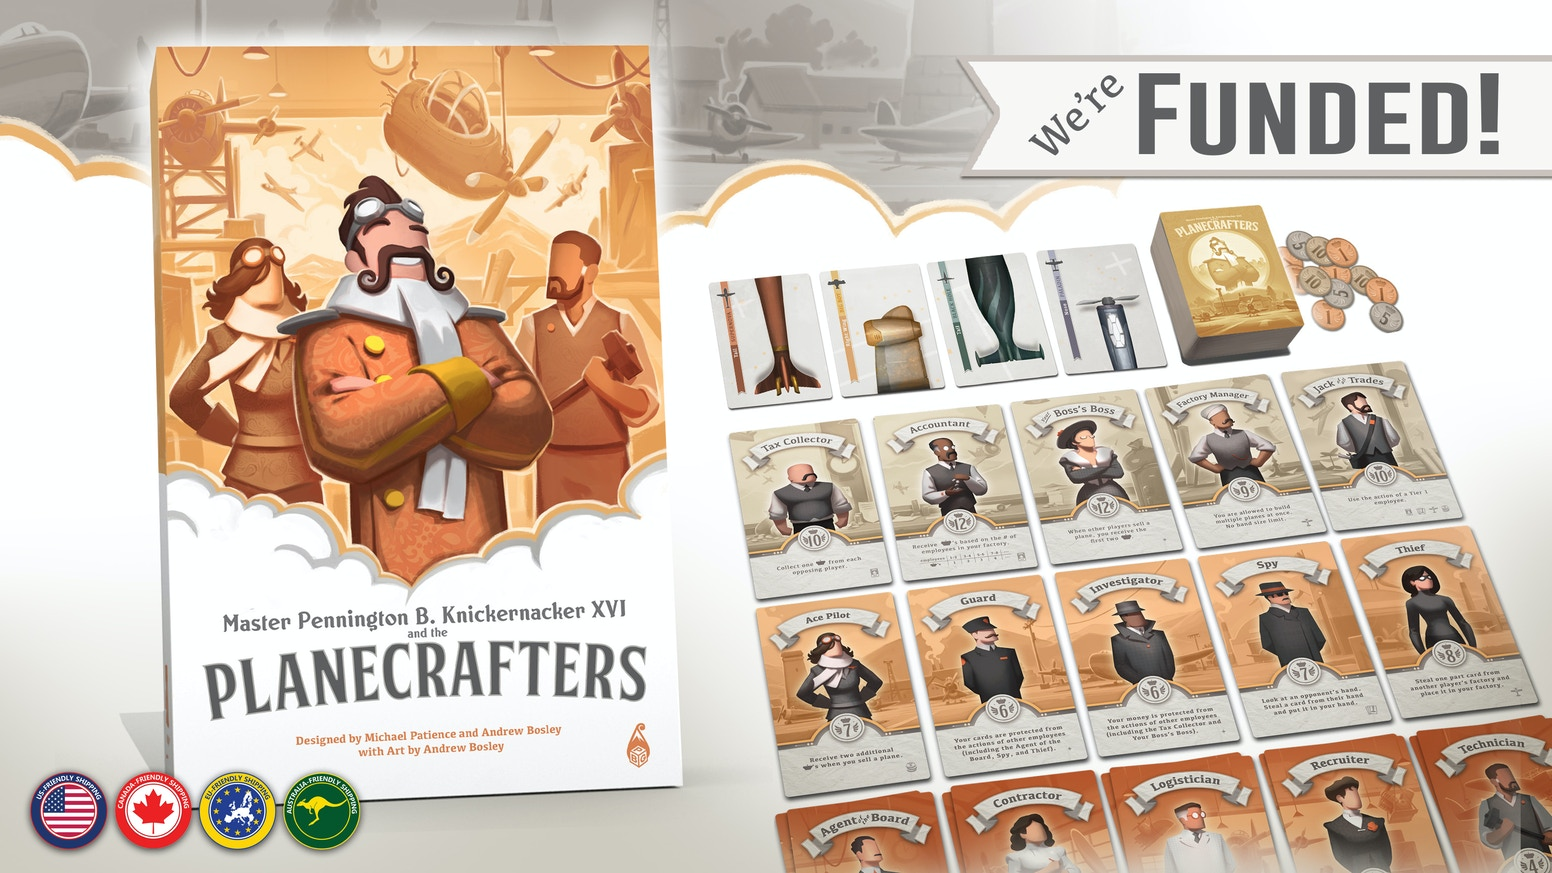 Planecrafters - A Fantasy Plane-Building Card Game by Paisley Board